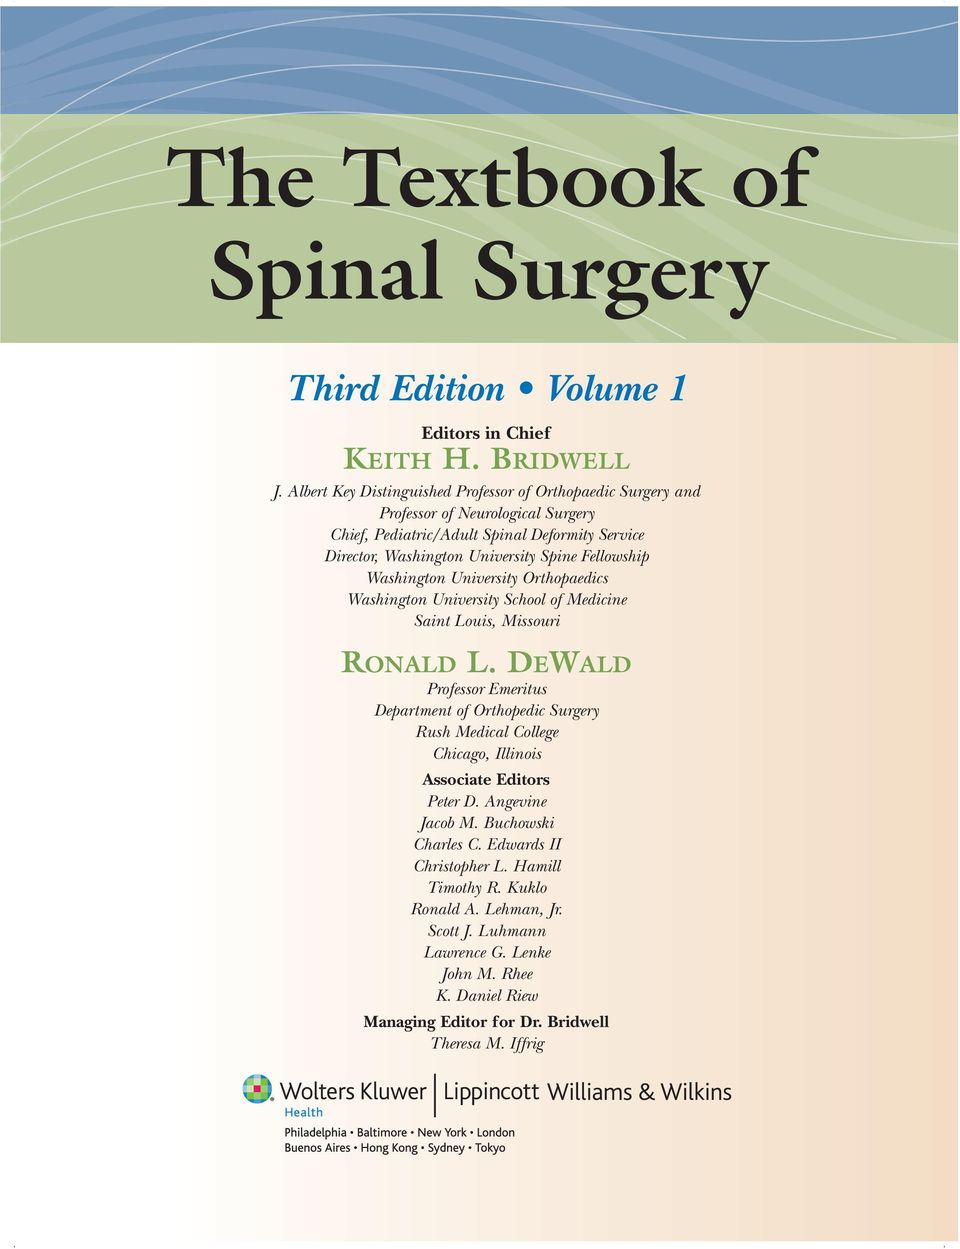 The Textbook of Spinal Surgery  Third Edition Volume 1 - PDF